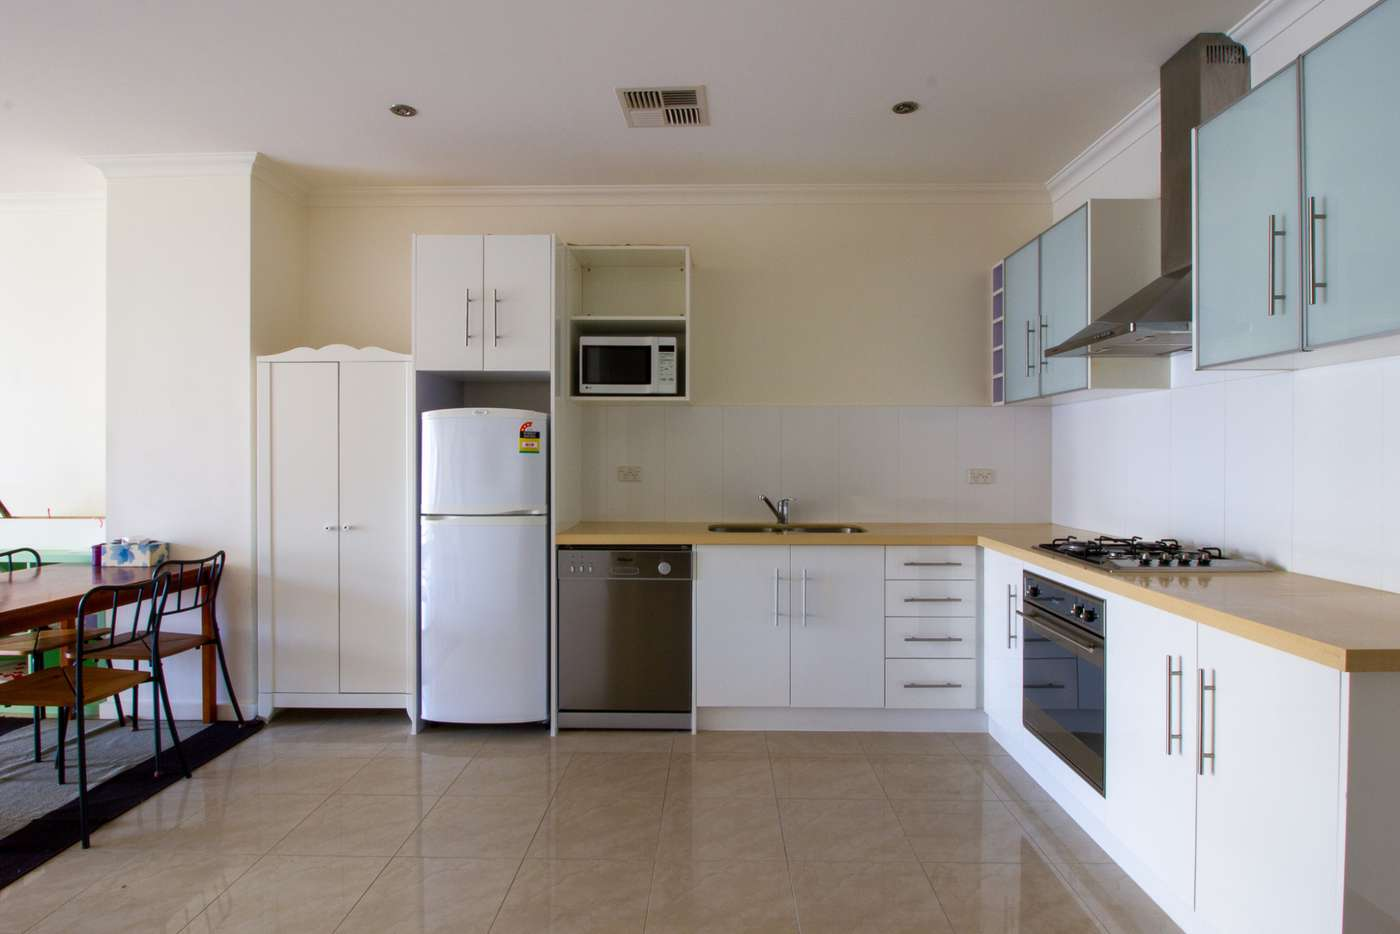 Fifth view of Homely house listing, 702/39 Grenfell Street, Adelaide SA 5000